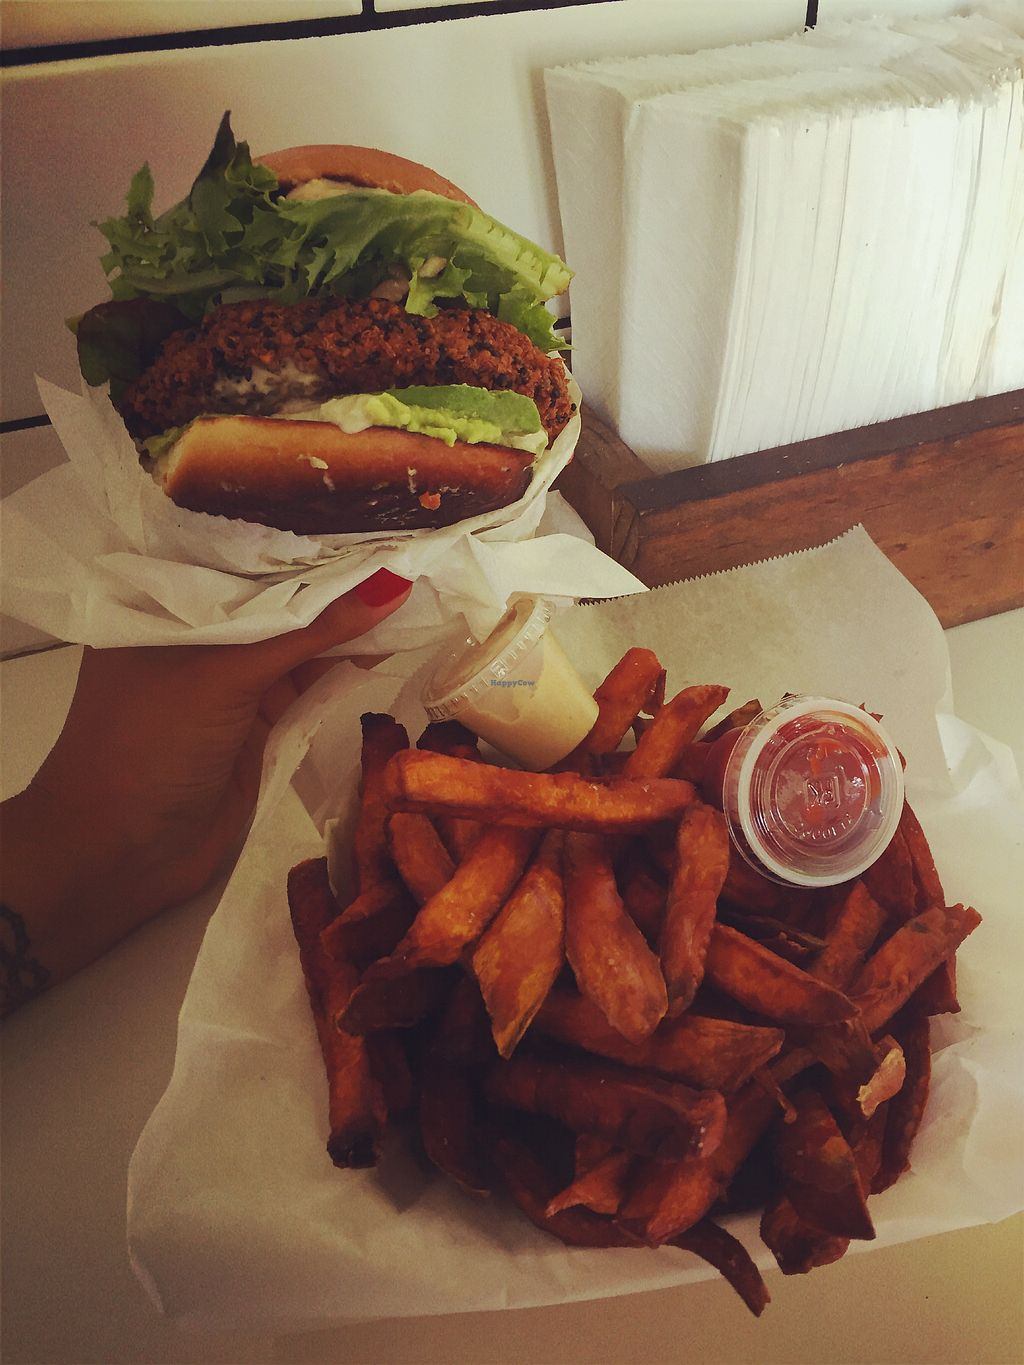 "Photo of CLOSED: Fala Bar - Venice  by <a href=""/members/profile/jergusko"">jergusko</a> <br/>Falafel burger & sweet potato fries <br/> October 24, 2017  - <a href='/contact/abuse/image/66143/318275'>Report</a>"